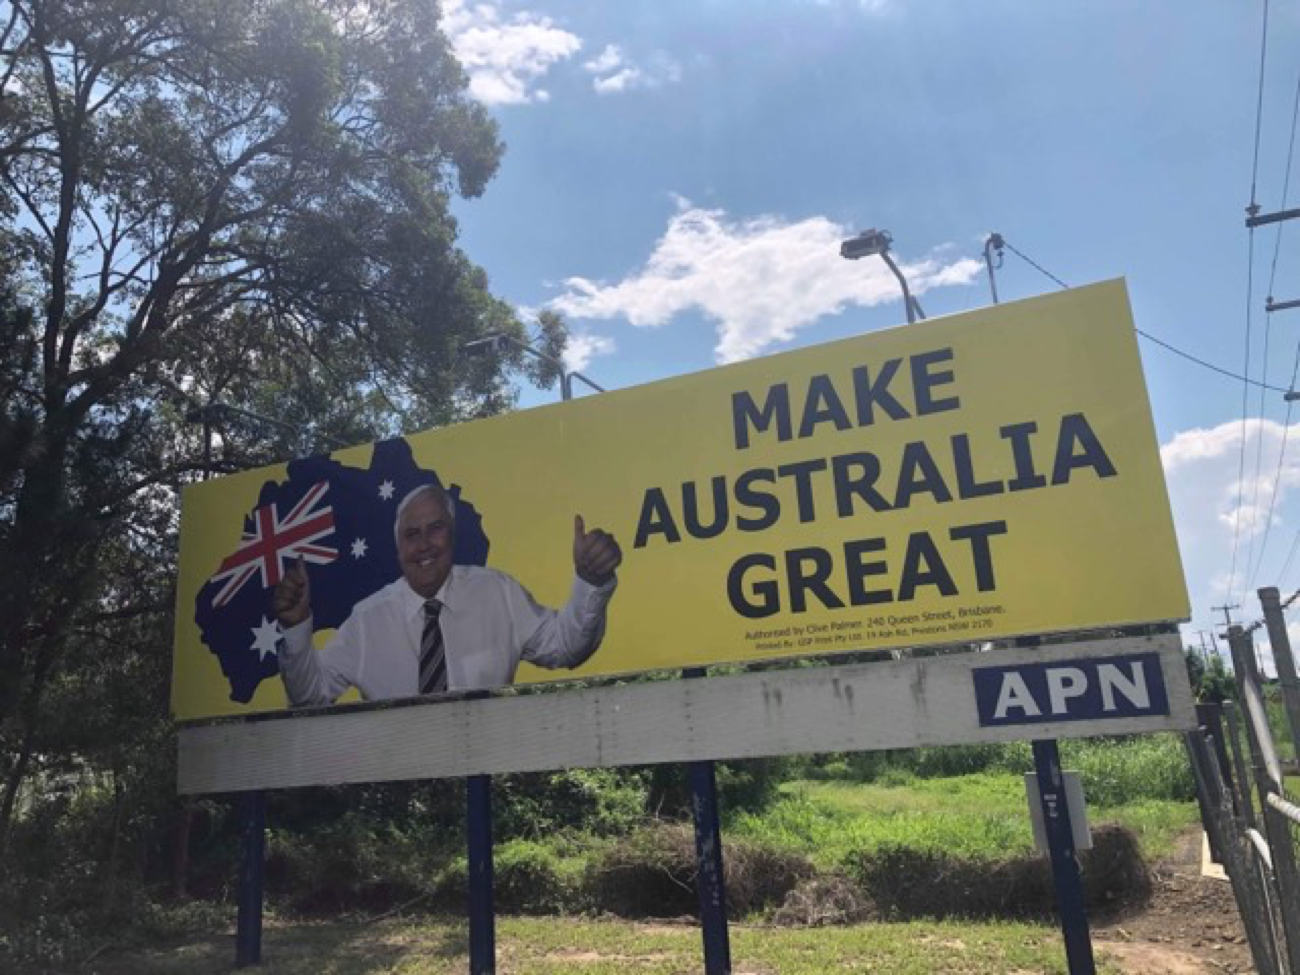 Clive Palmer is trying to make a memorable impression in the Dickson electorate and beyond.